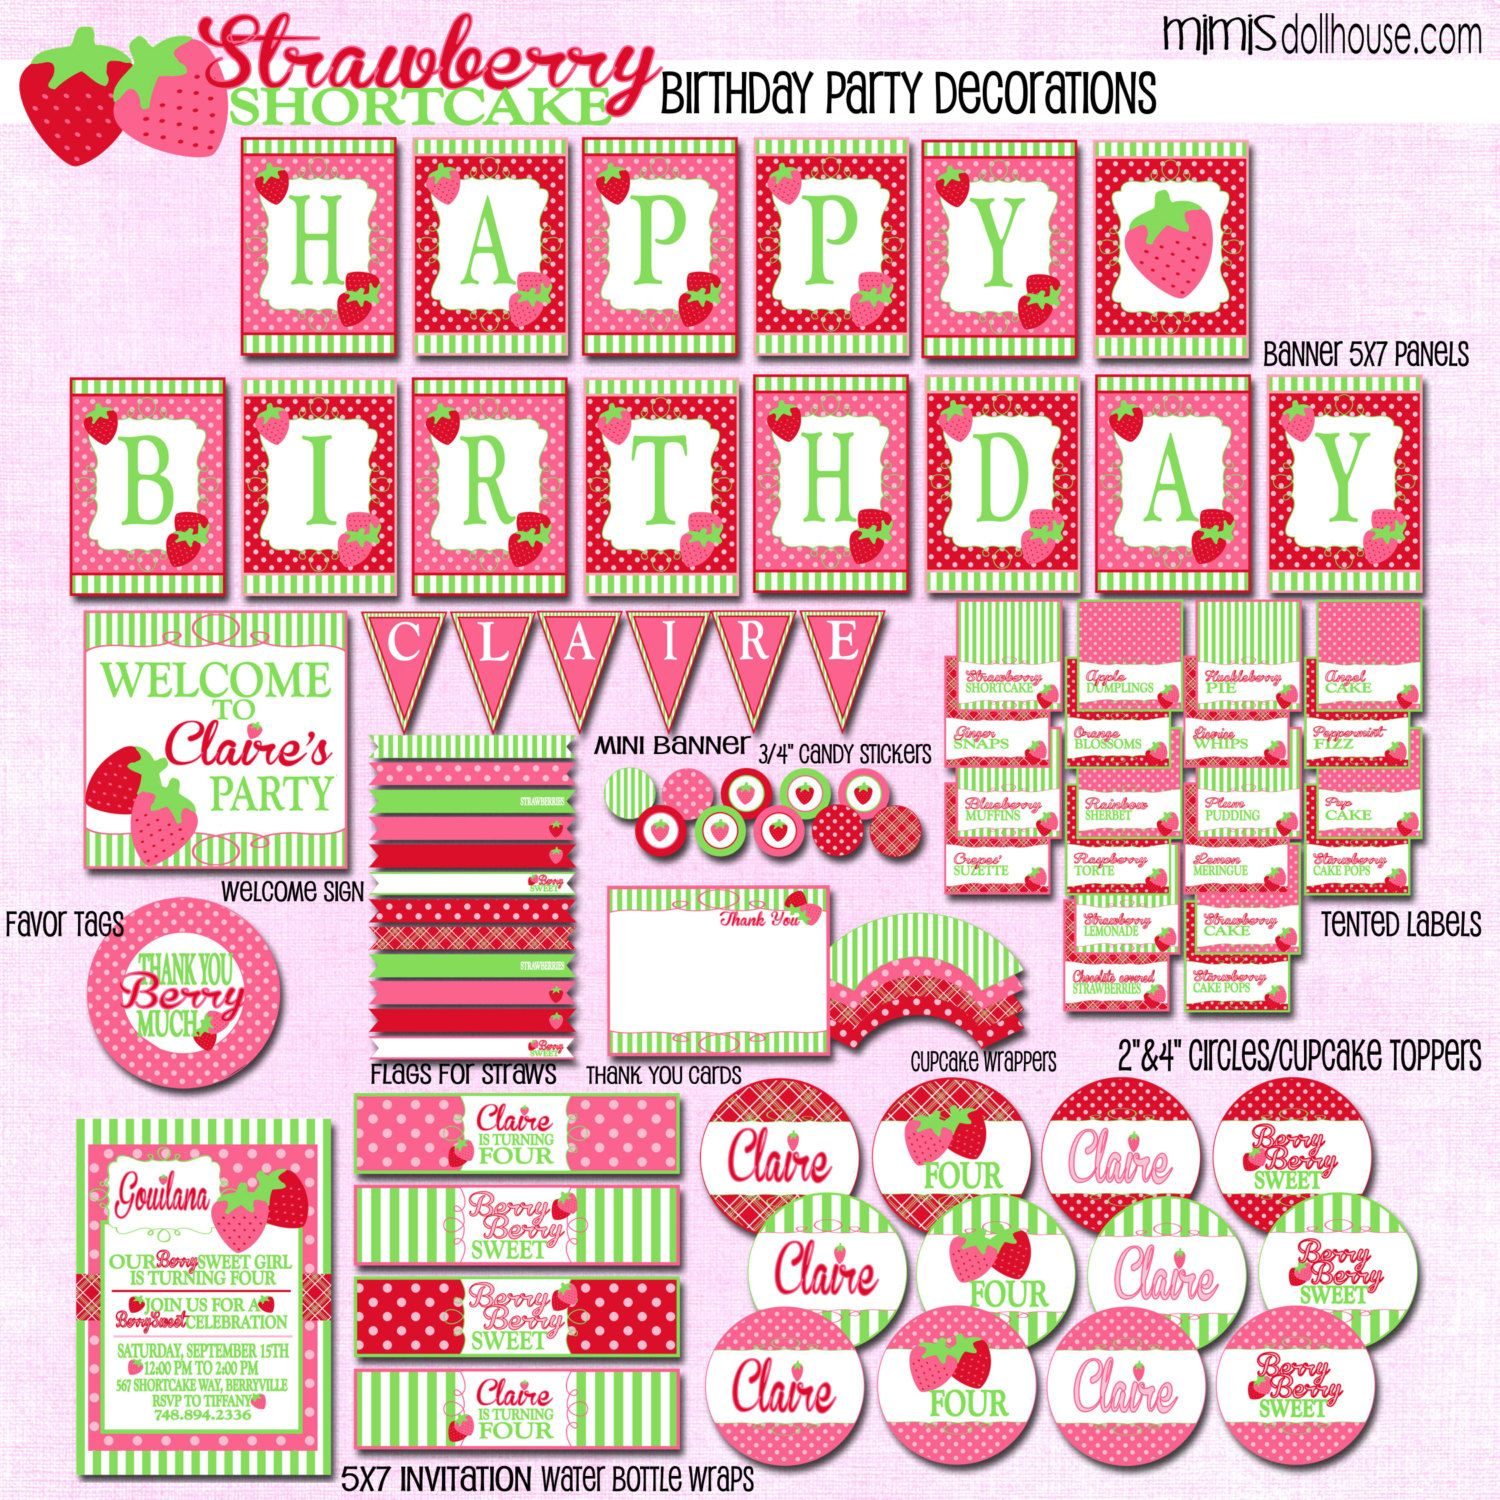 Pin by Laura Isabel NP on Manualidades1 | Pinterest | Strawberry ...